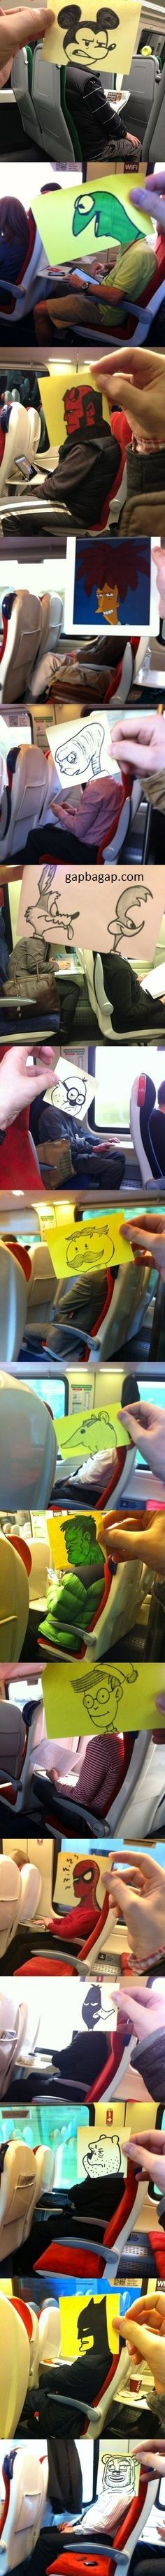 Funny Pictures Of The Day By An Amazing Artist